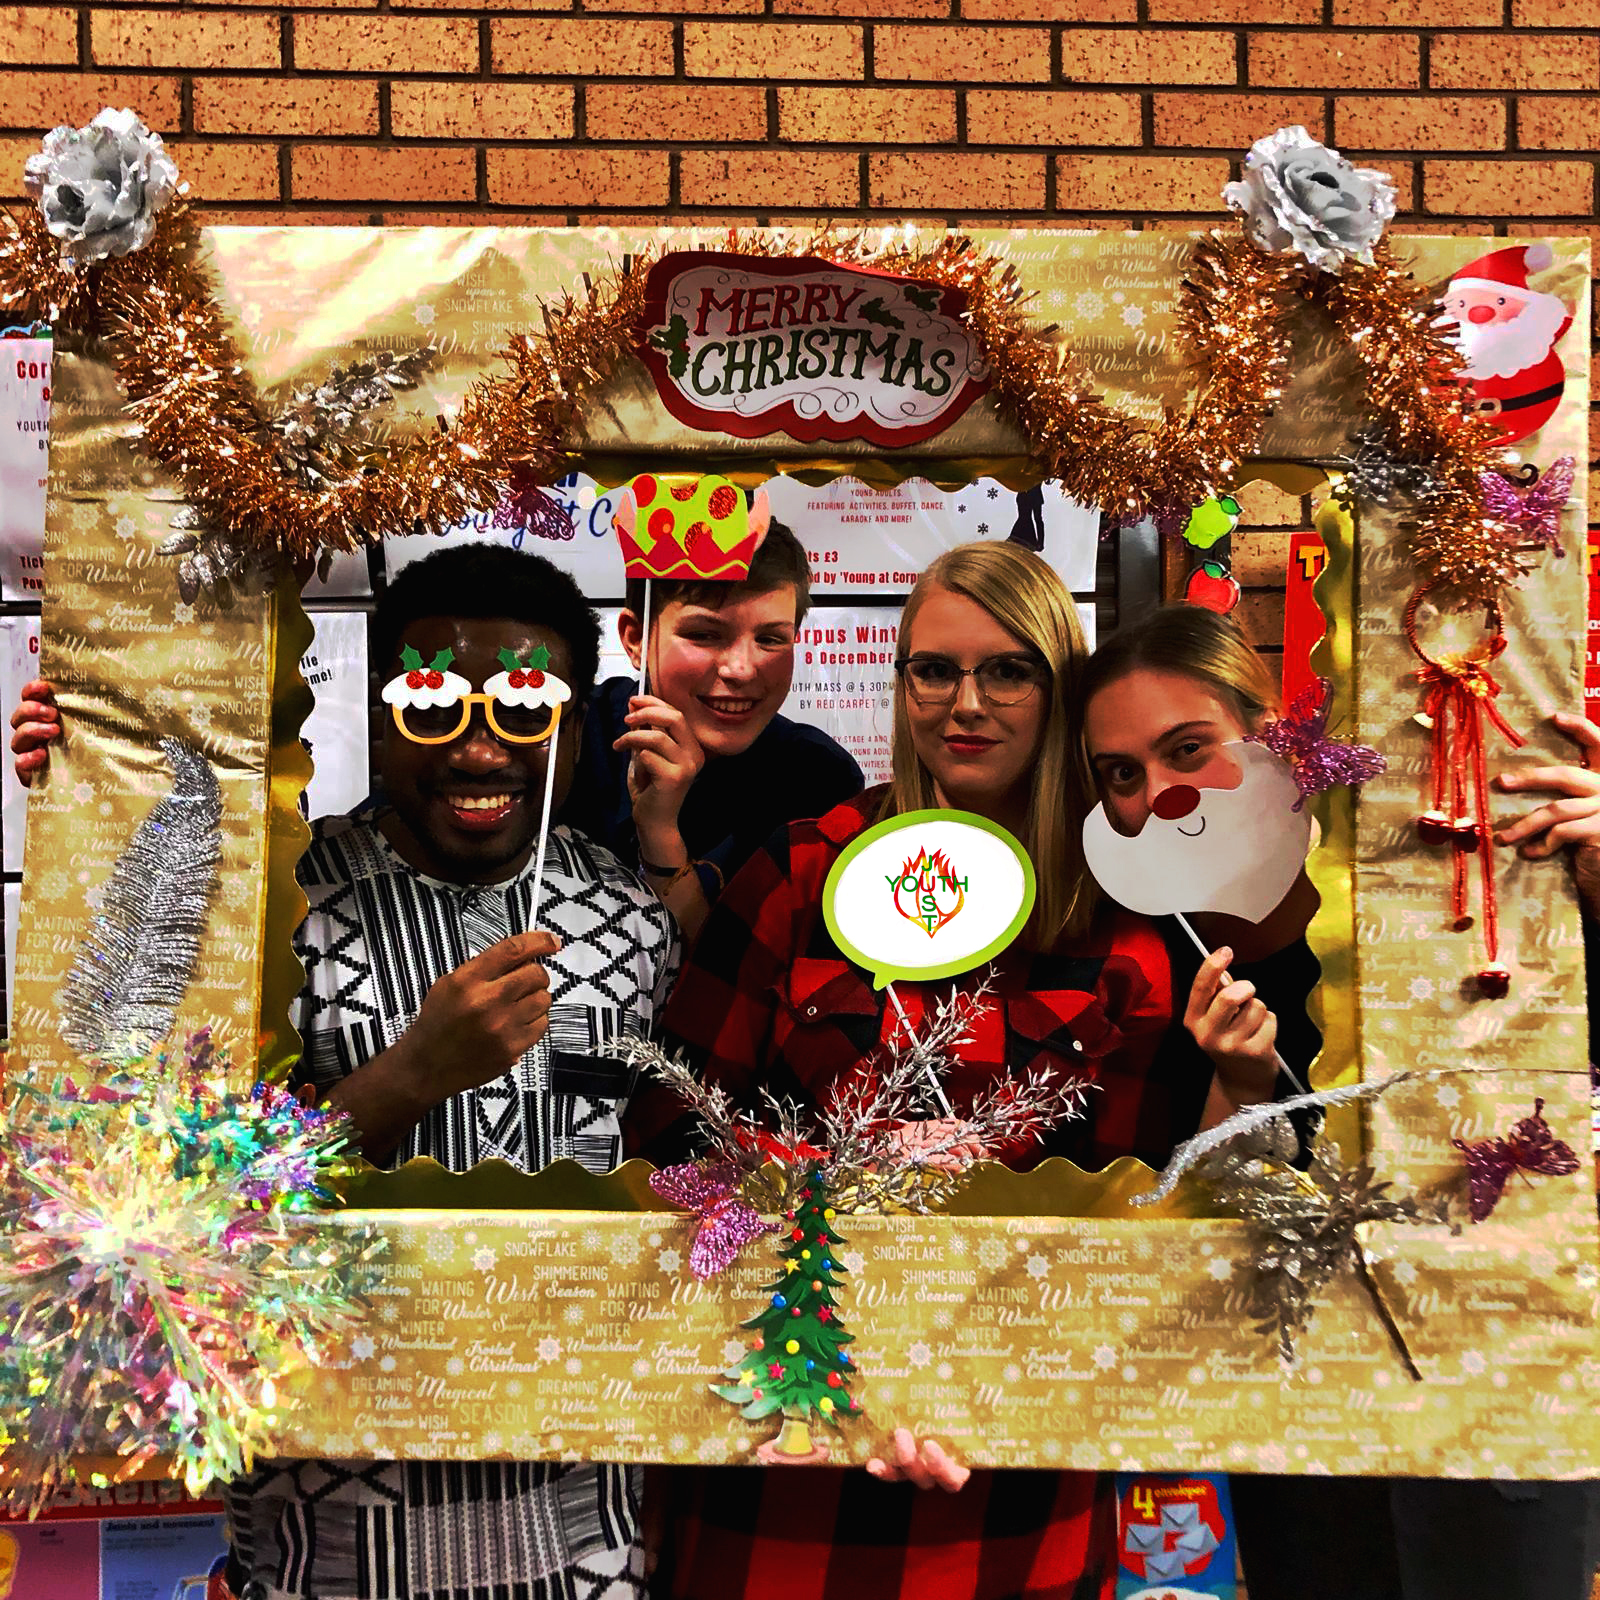 Image of Just Youth volunteers and Fr. David using funny props for a Christmas themed photobooth.